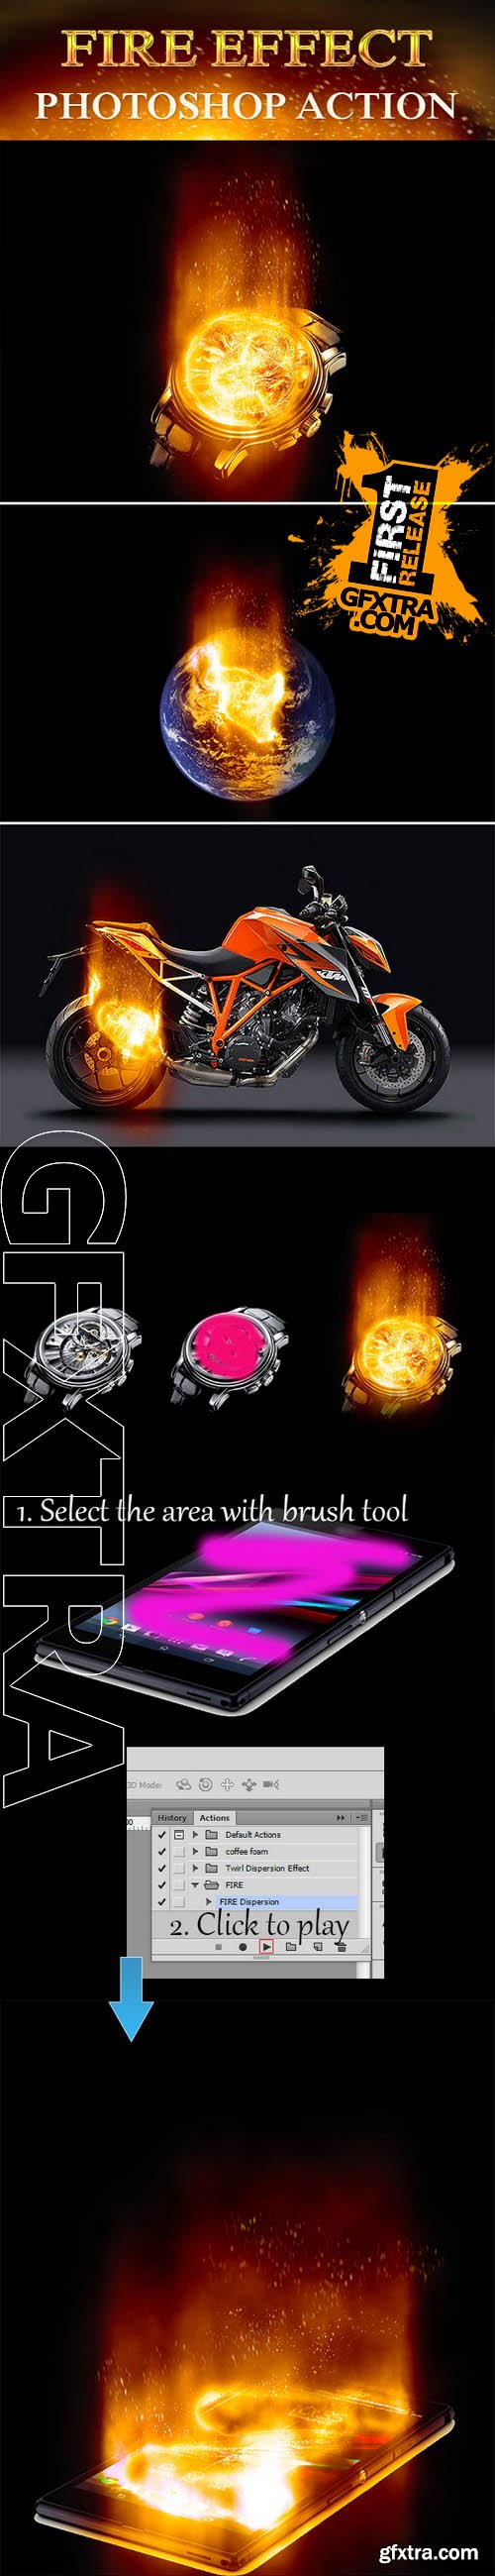 Fire Effect Photoshop Action - Graphicriver 10450847